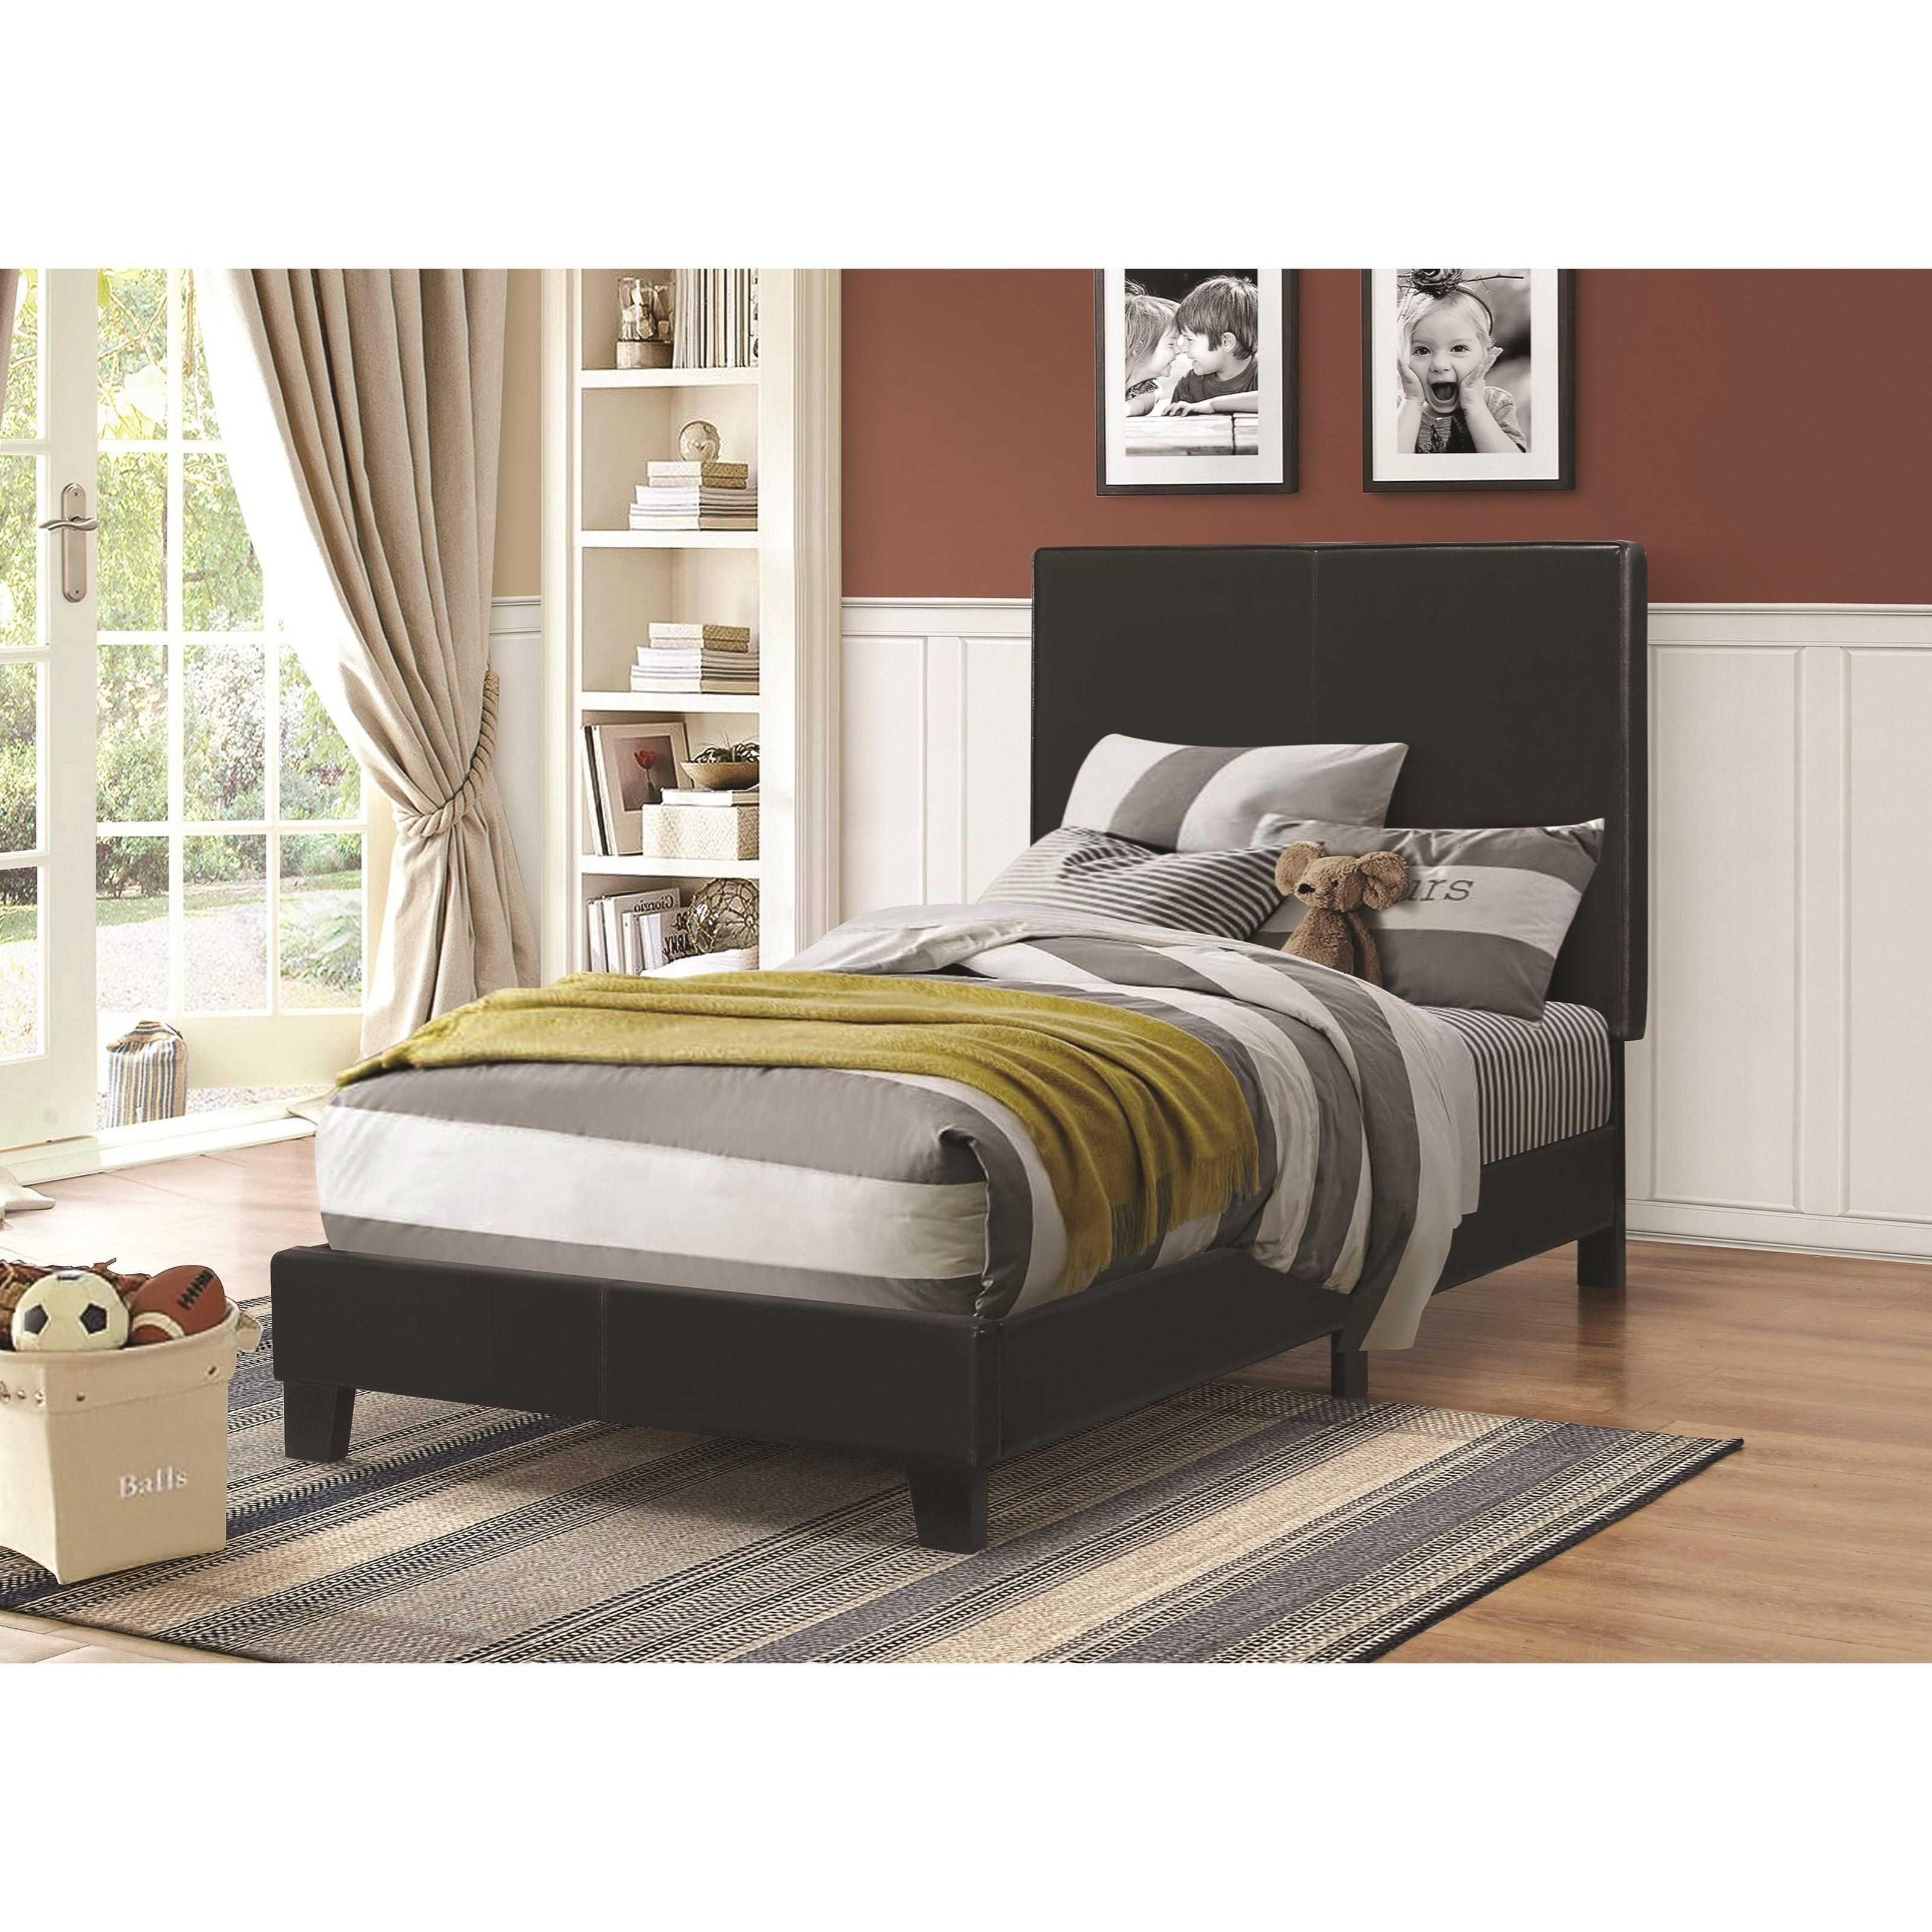 Coaster Upholstered Beds Twin Bed - Item Number: 300558T